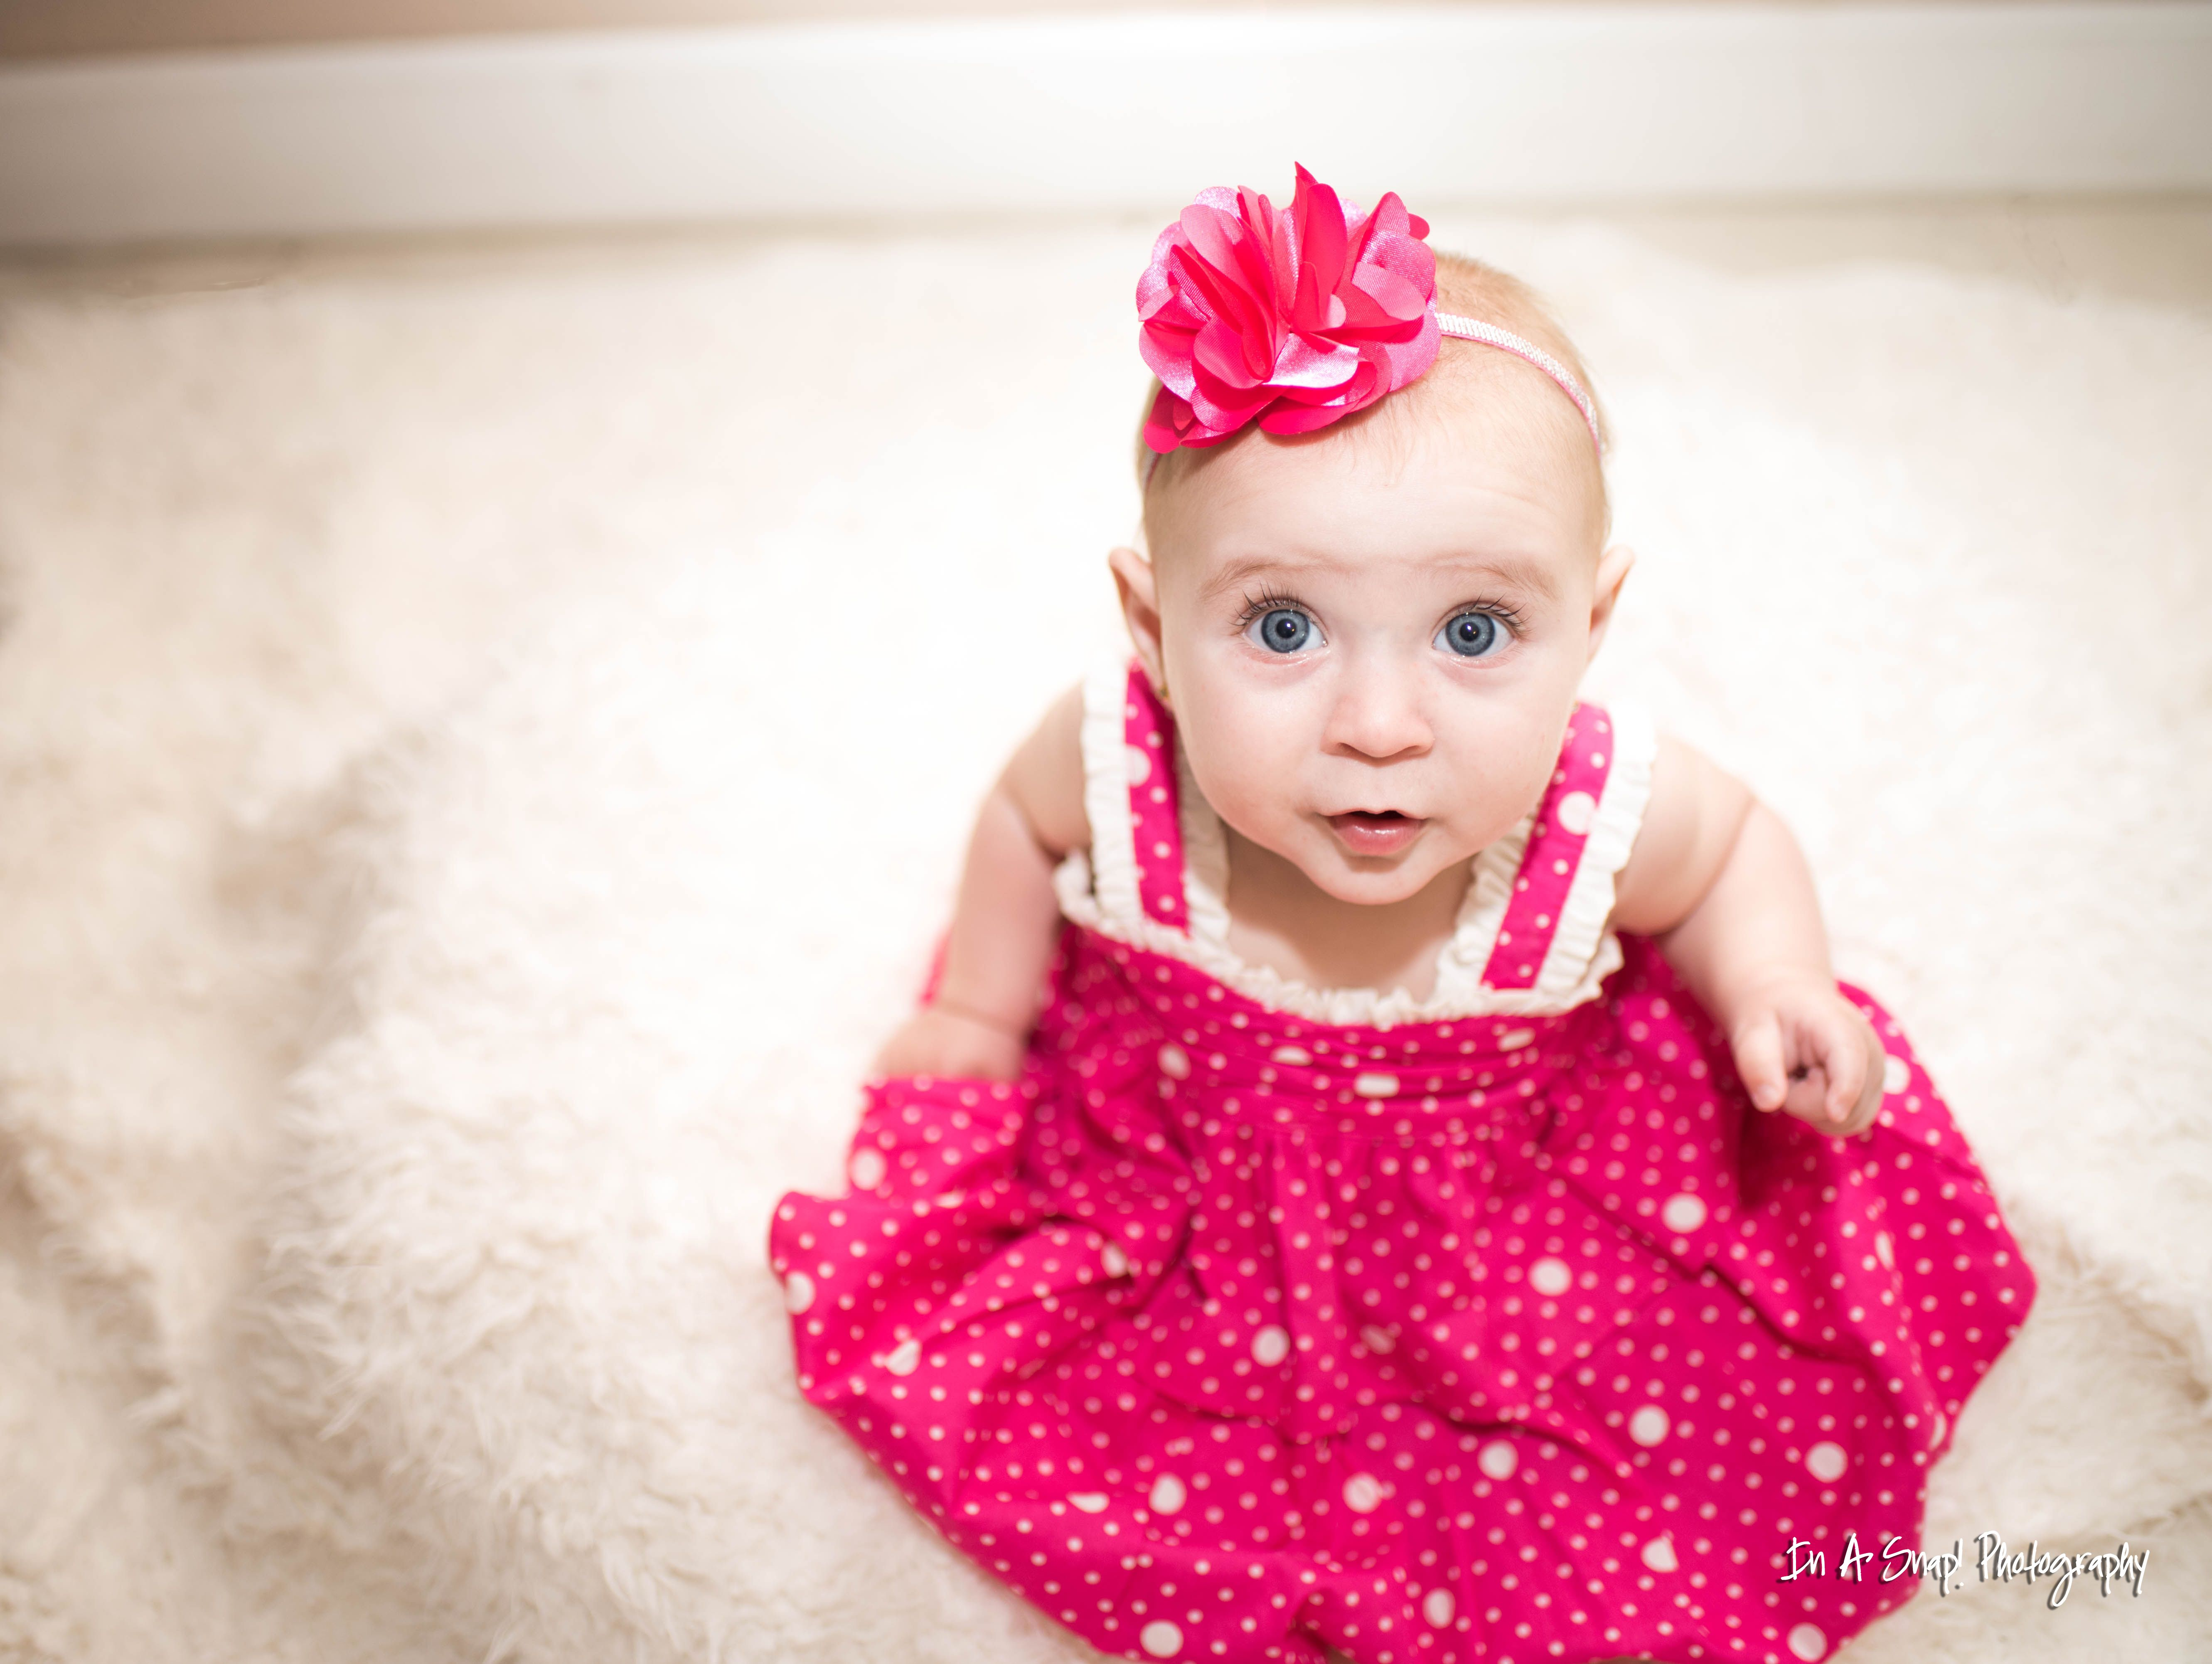 baby blue eyes so beautiful in her pink dress.